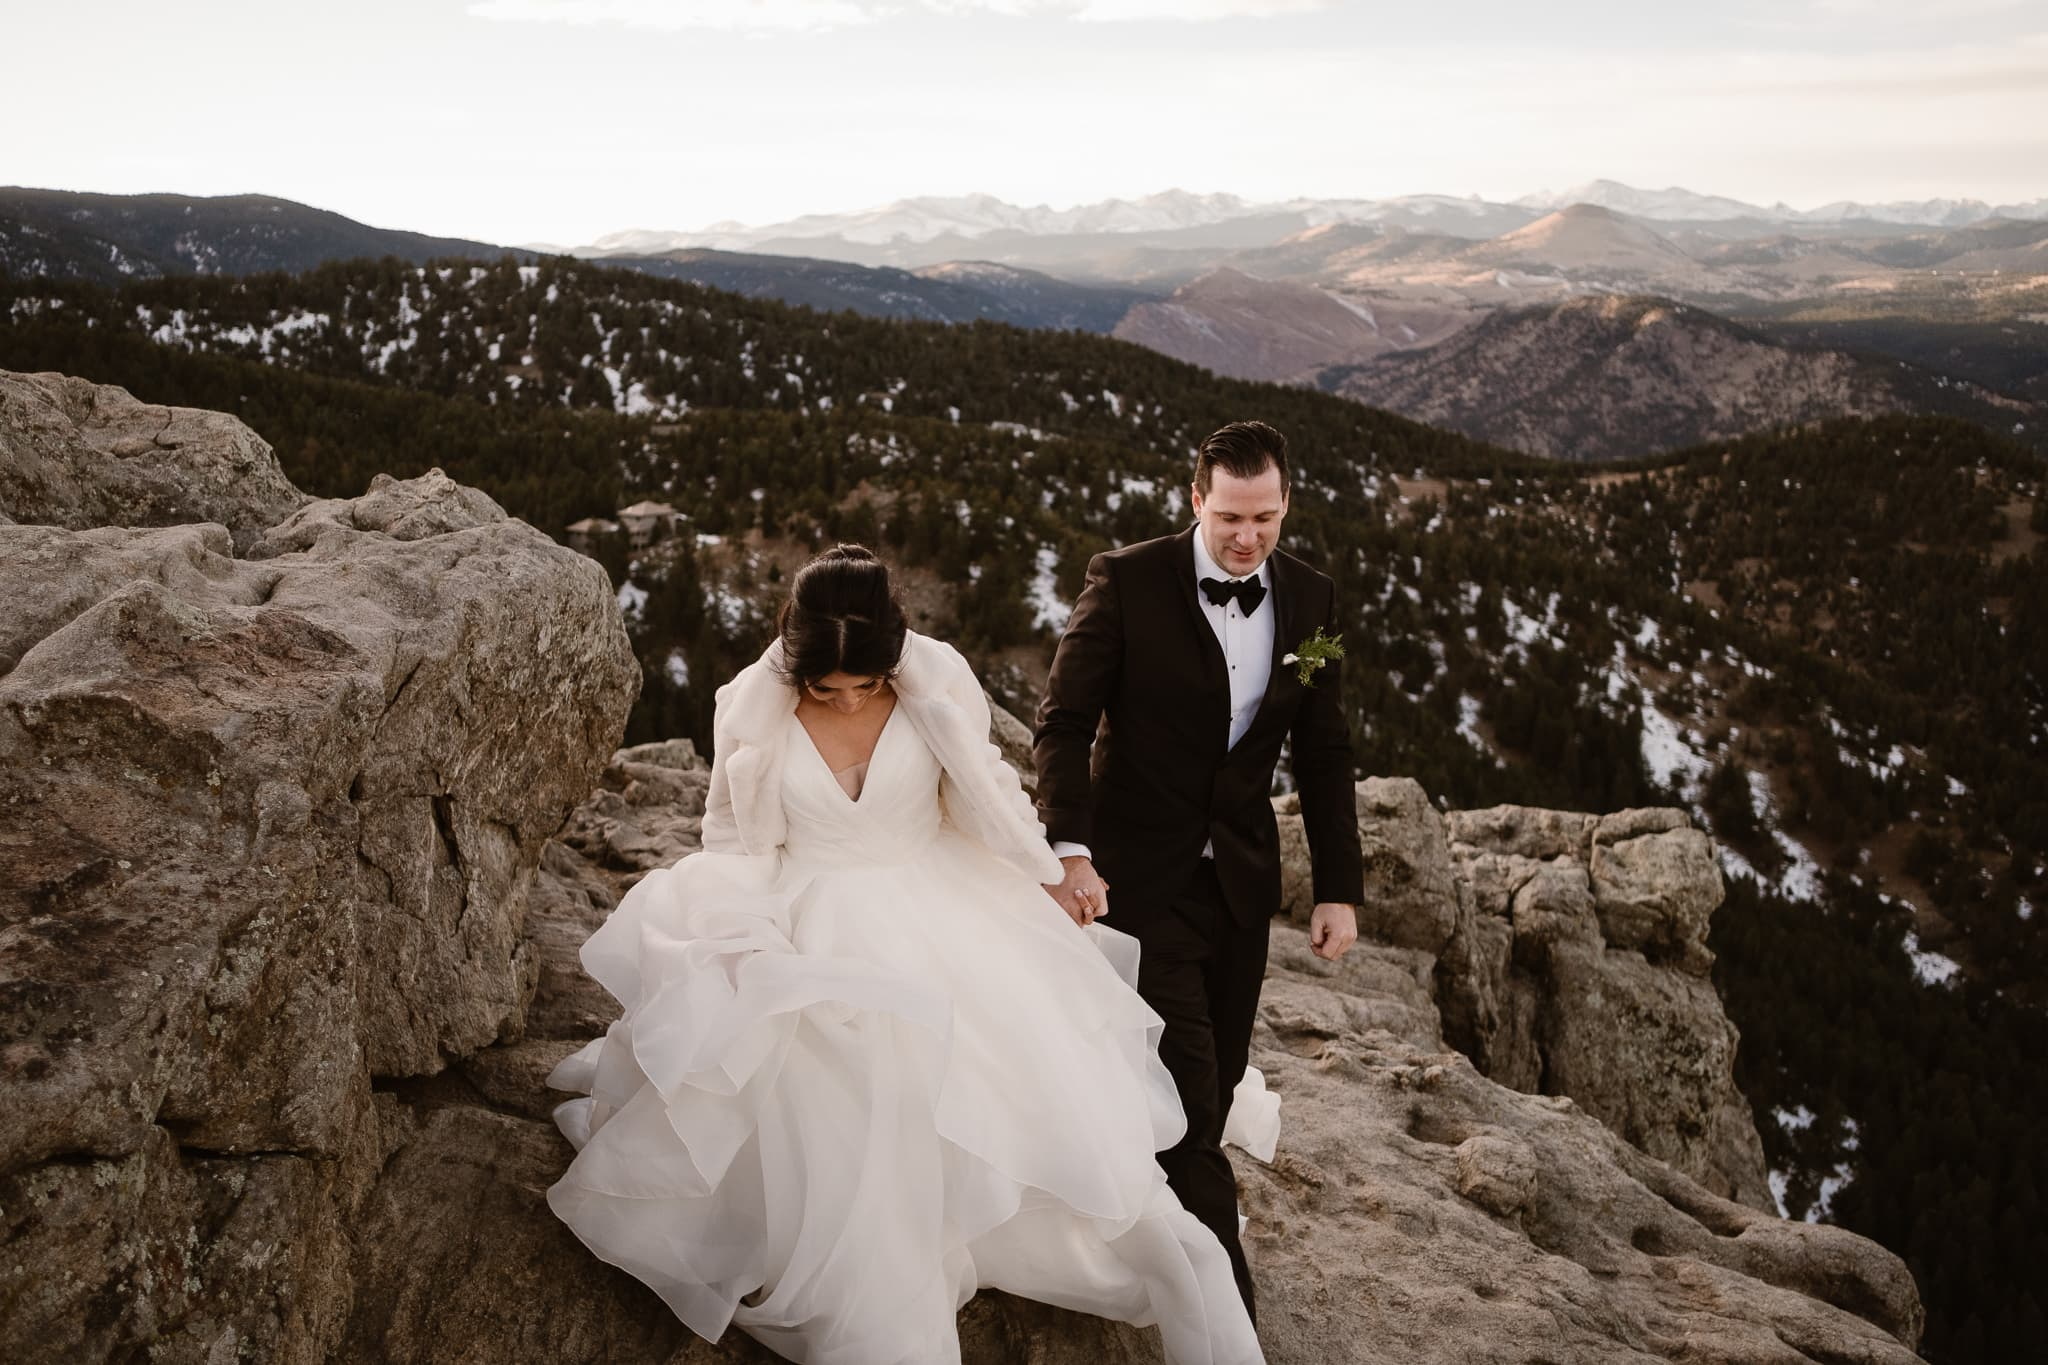 St Julien Wedding Photographer Boulder, Lost Gulch wedding portraits, Colorado wedding photographer, mountain wedding photos